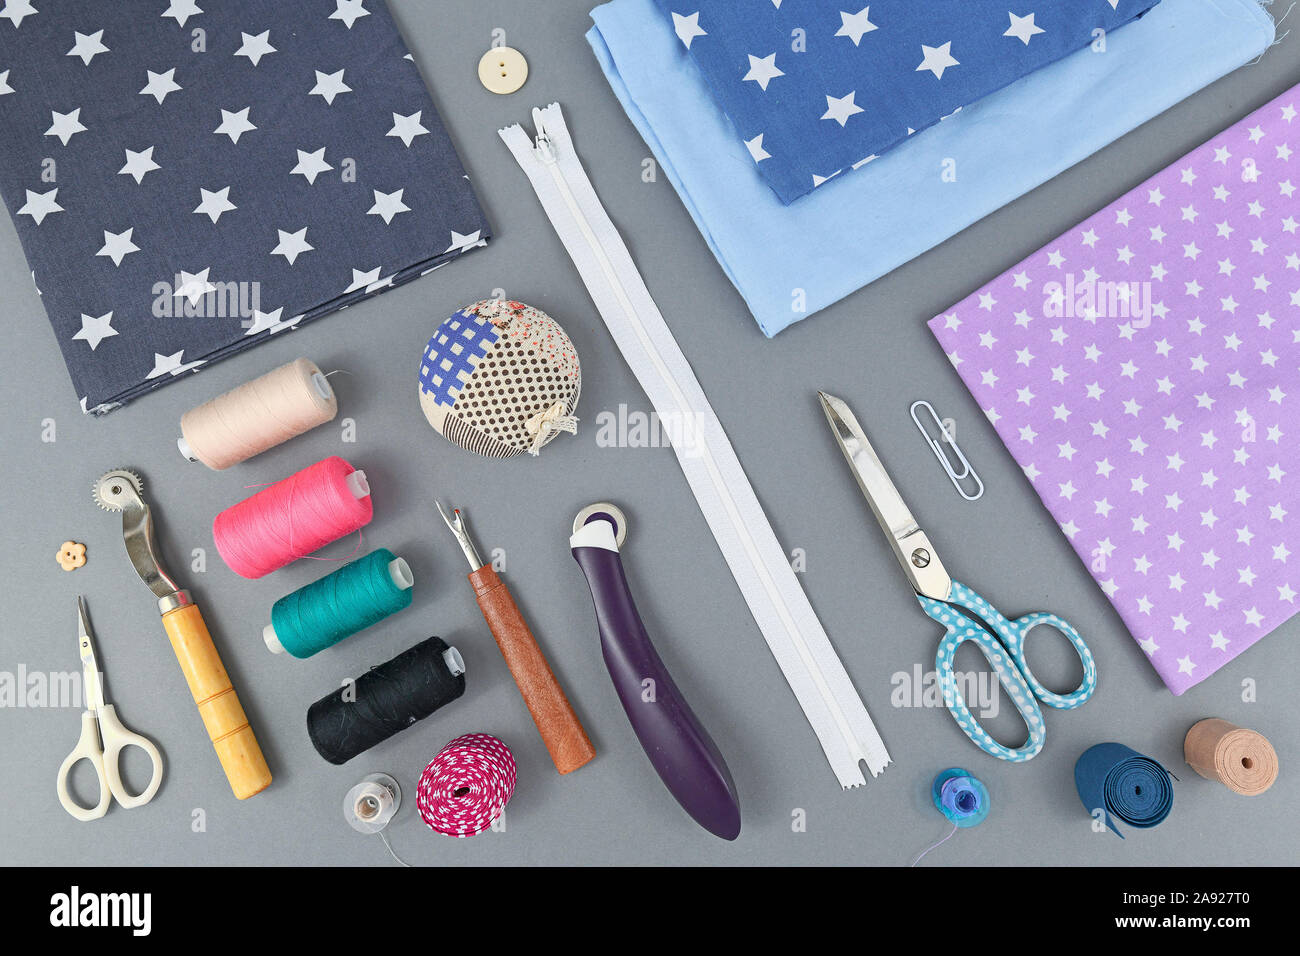 Overhead flat lay with various different sewing tools like fabric, thread, zipper, scissors, spool, thread seperator, pincushion or rotary cutter on g Stock Photo